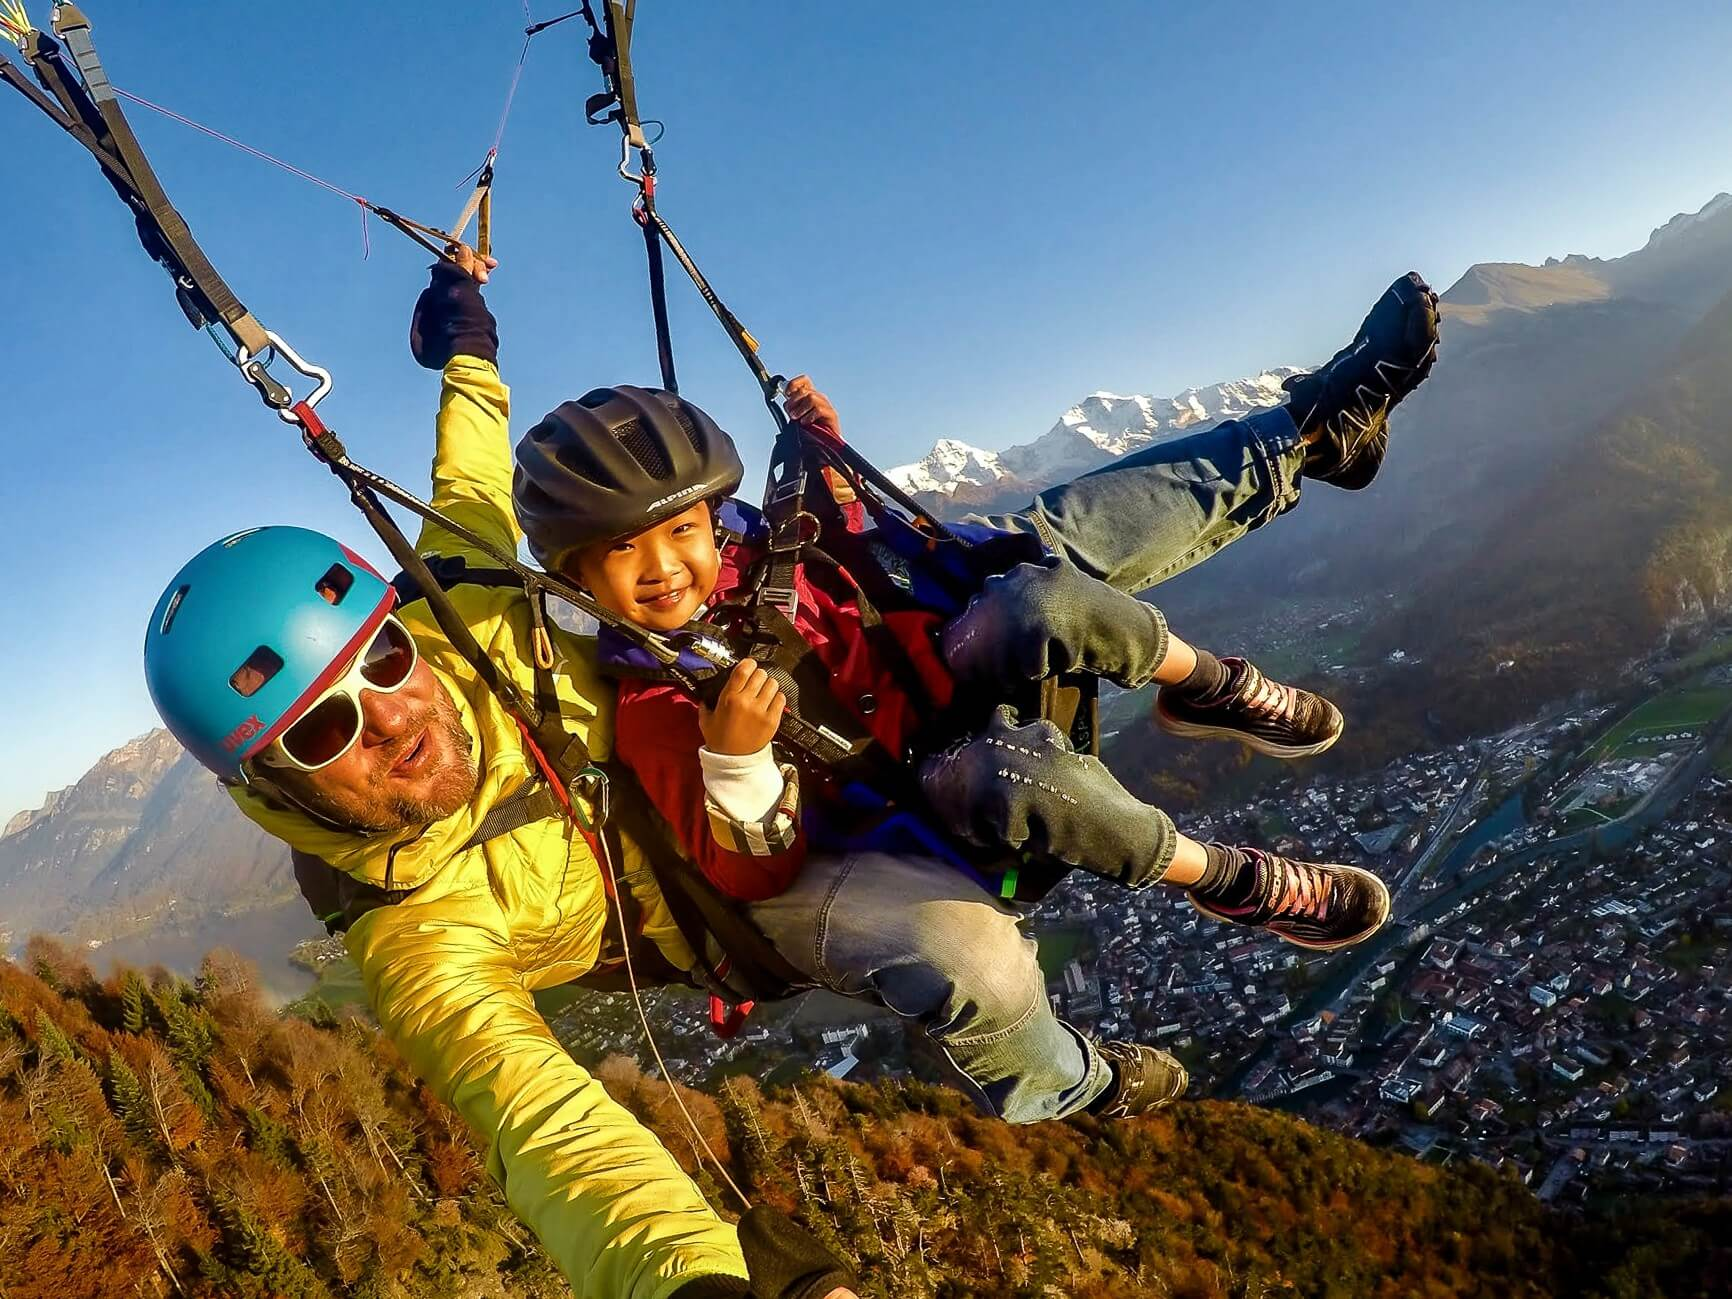 skywings-paragliding-interlaken-herbst-kind-asien